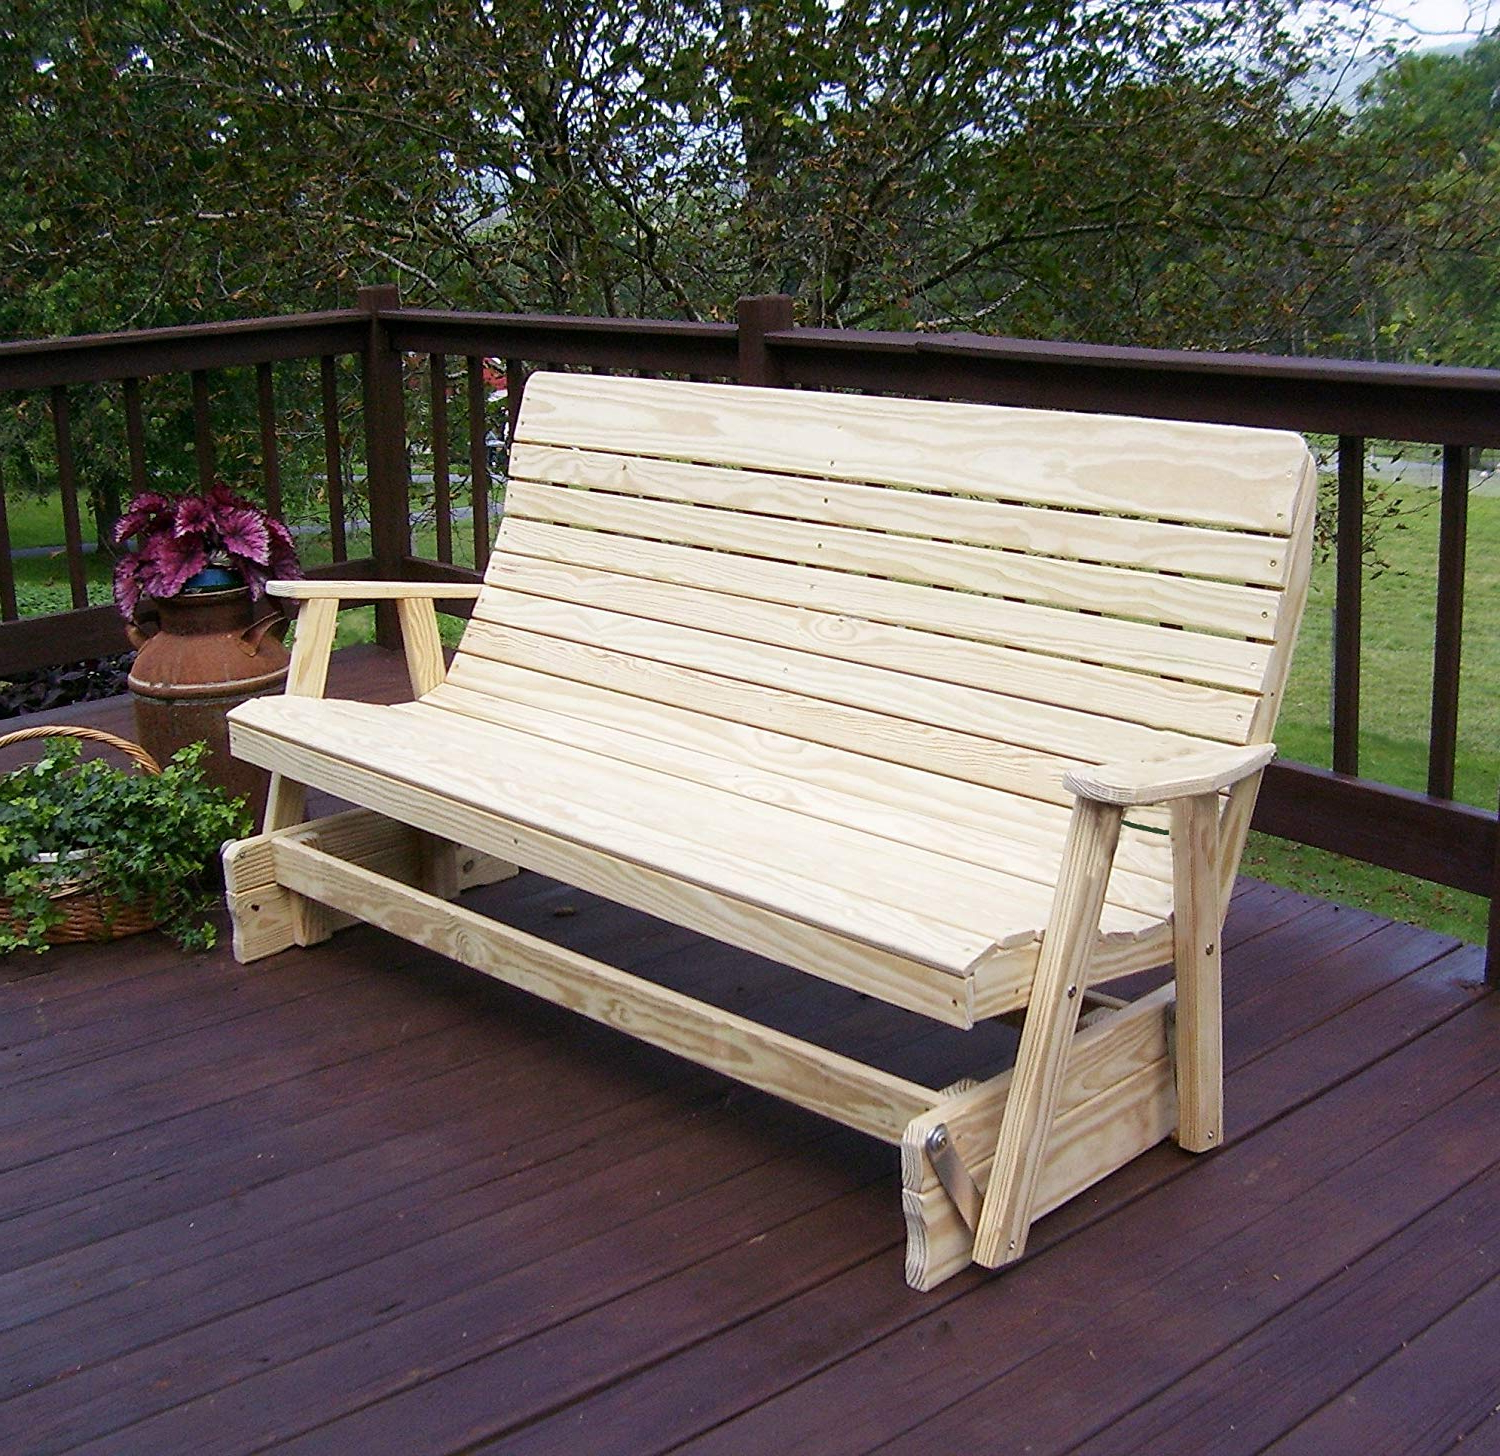 Fashionable Hardwood Porch Glider Benches In Amazon : 6' Porch Glider Outdoor Patio Bench, 2 Person (View 14 of 30)